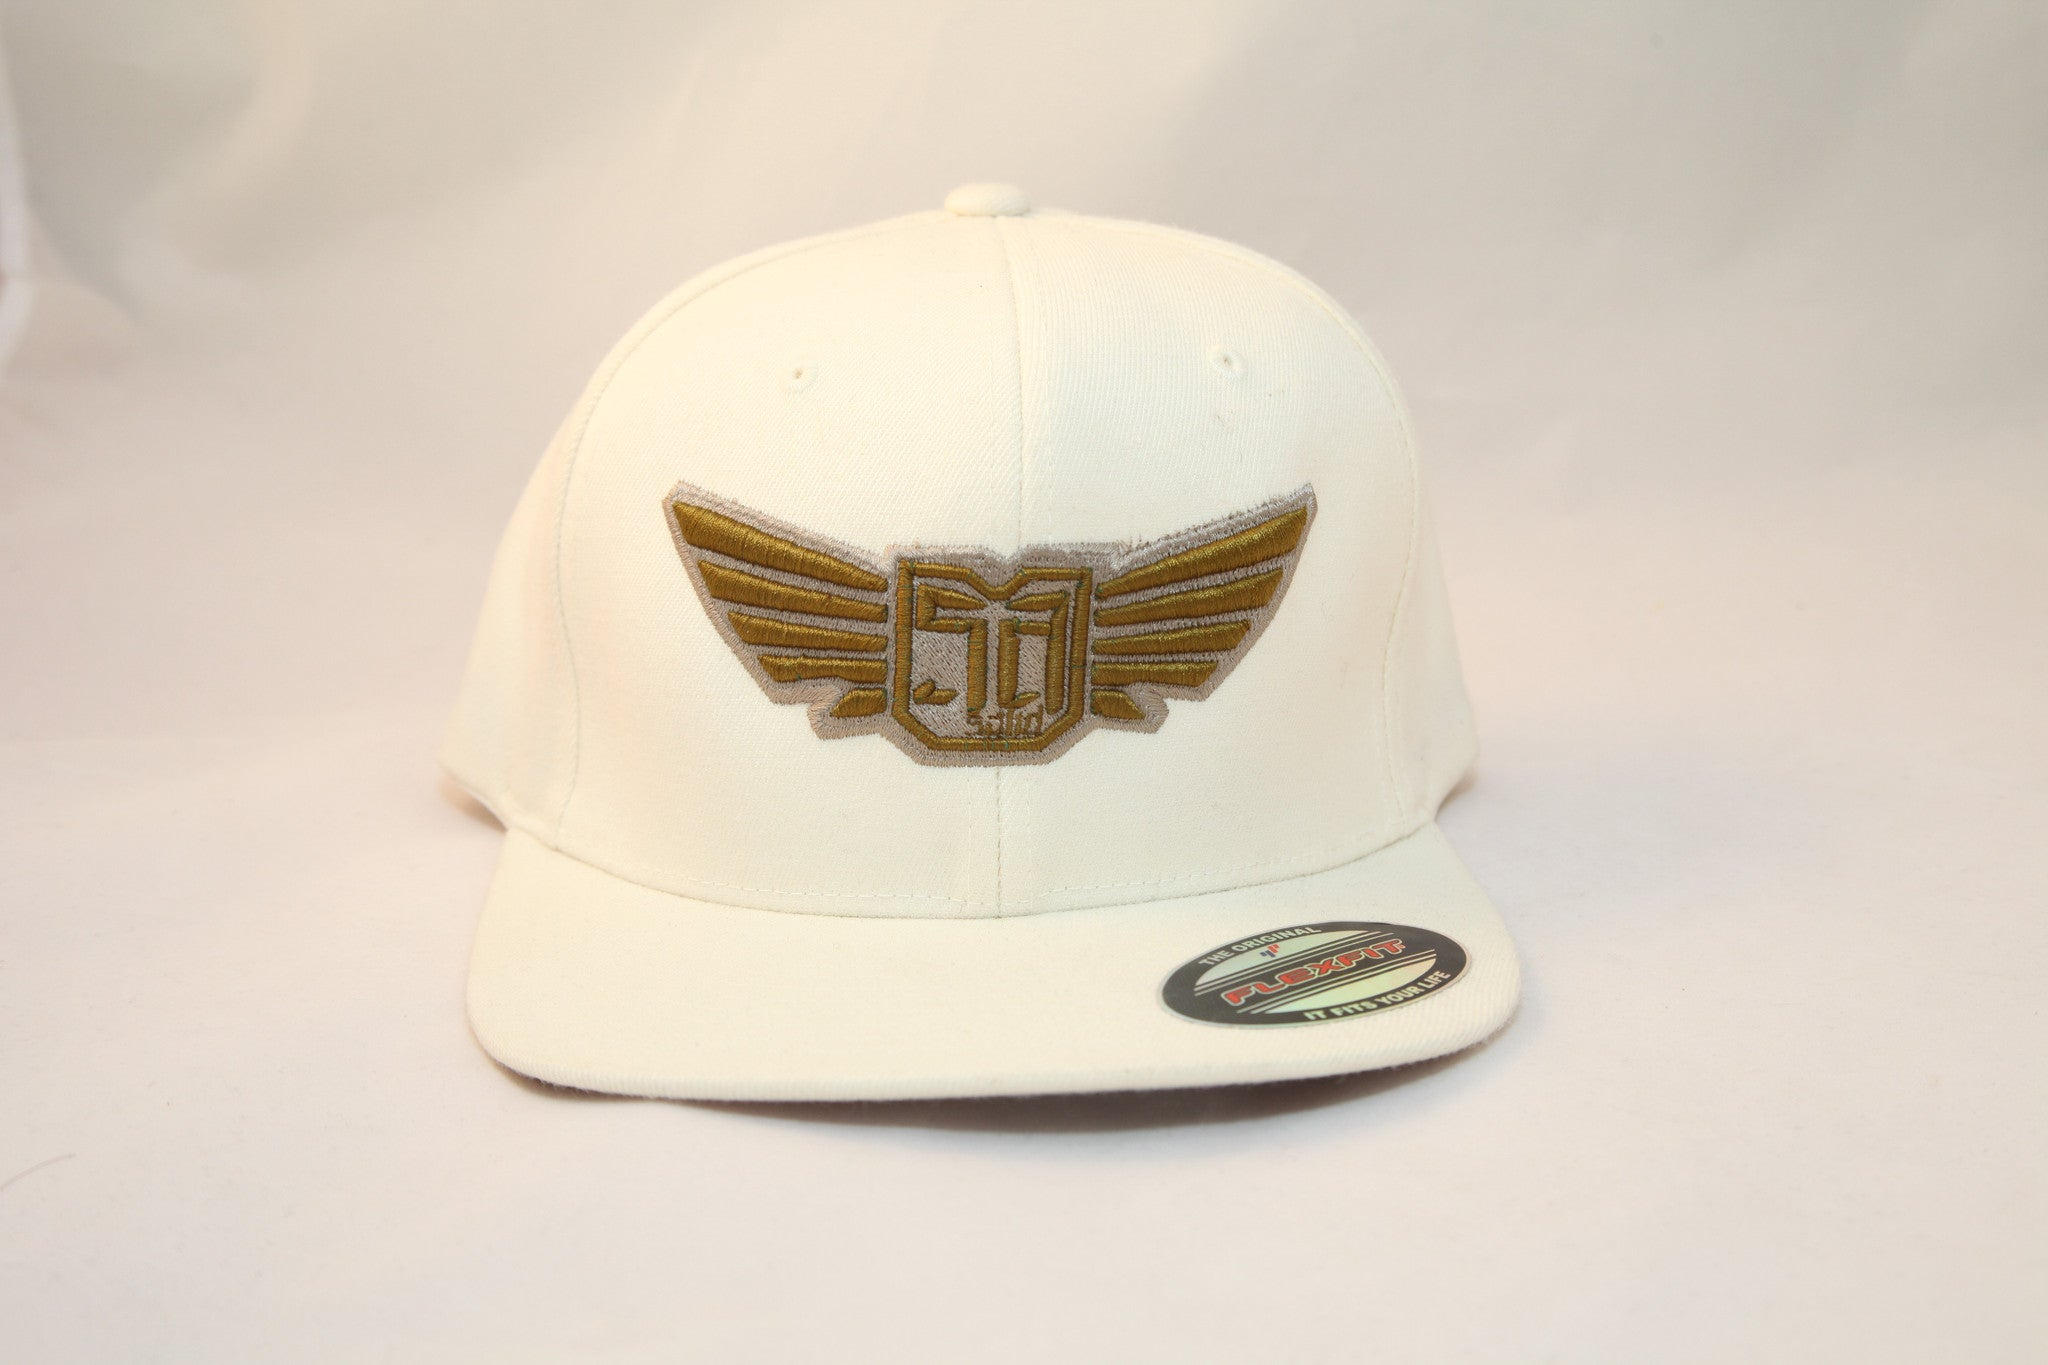 AV8 - FLEXFIT SNAP BACK HAT - WHITE - GLD / SLV LOGO